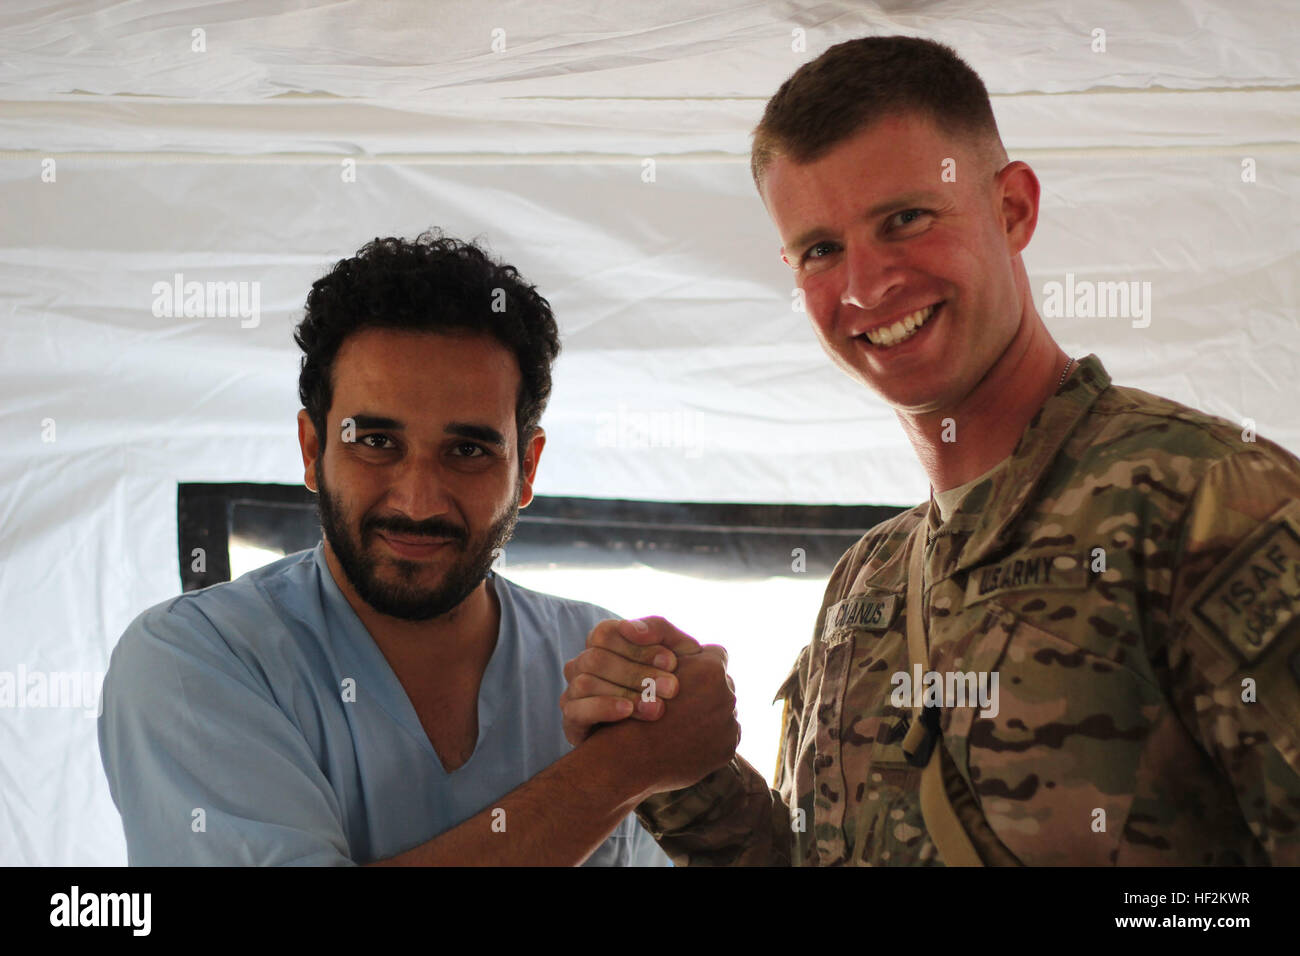 Sgt. Raymond Macmanus (right) of the 250th Forward Surgical Team, 62nd Medical Brigade, shakes hands with an Afghan - Stock Image